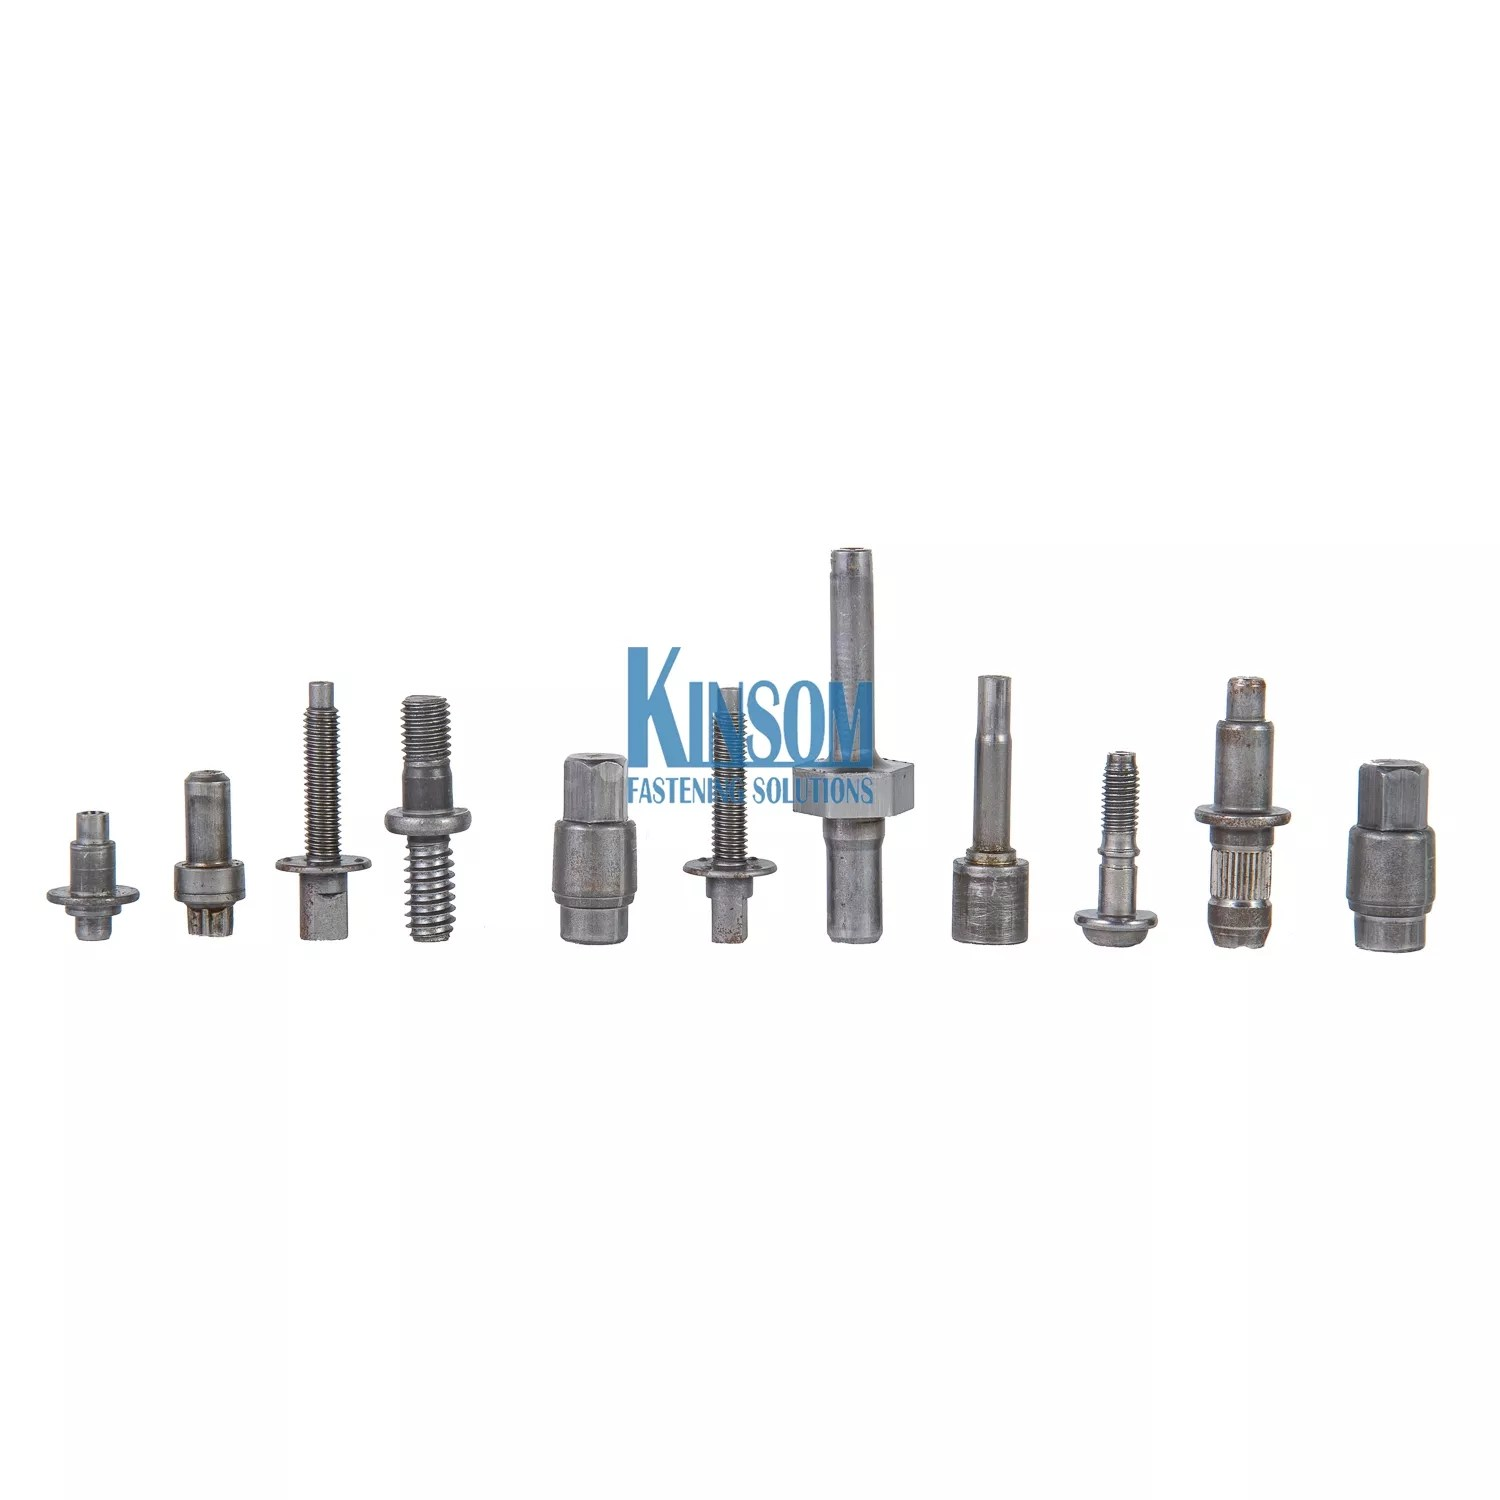 Special Kinsom Fasteners Cold Forging Automotive Industry